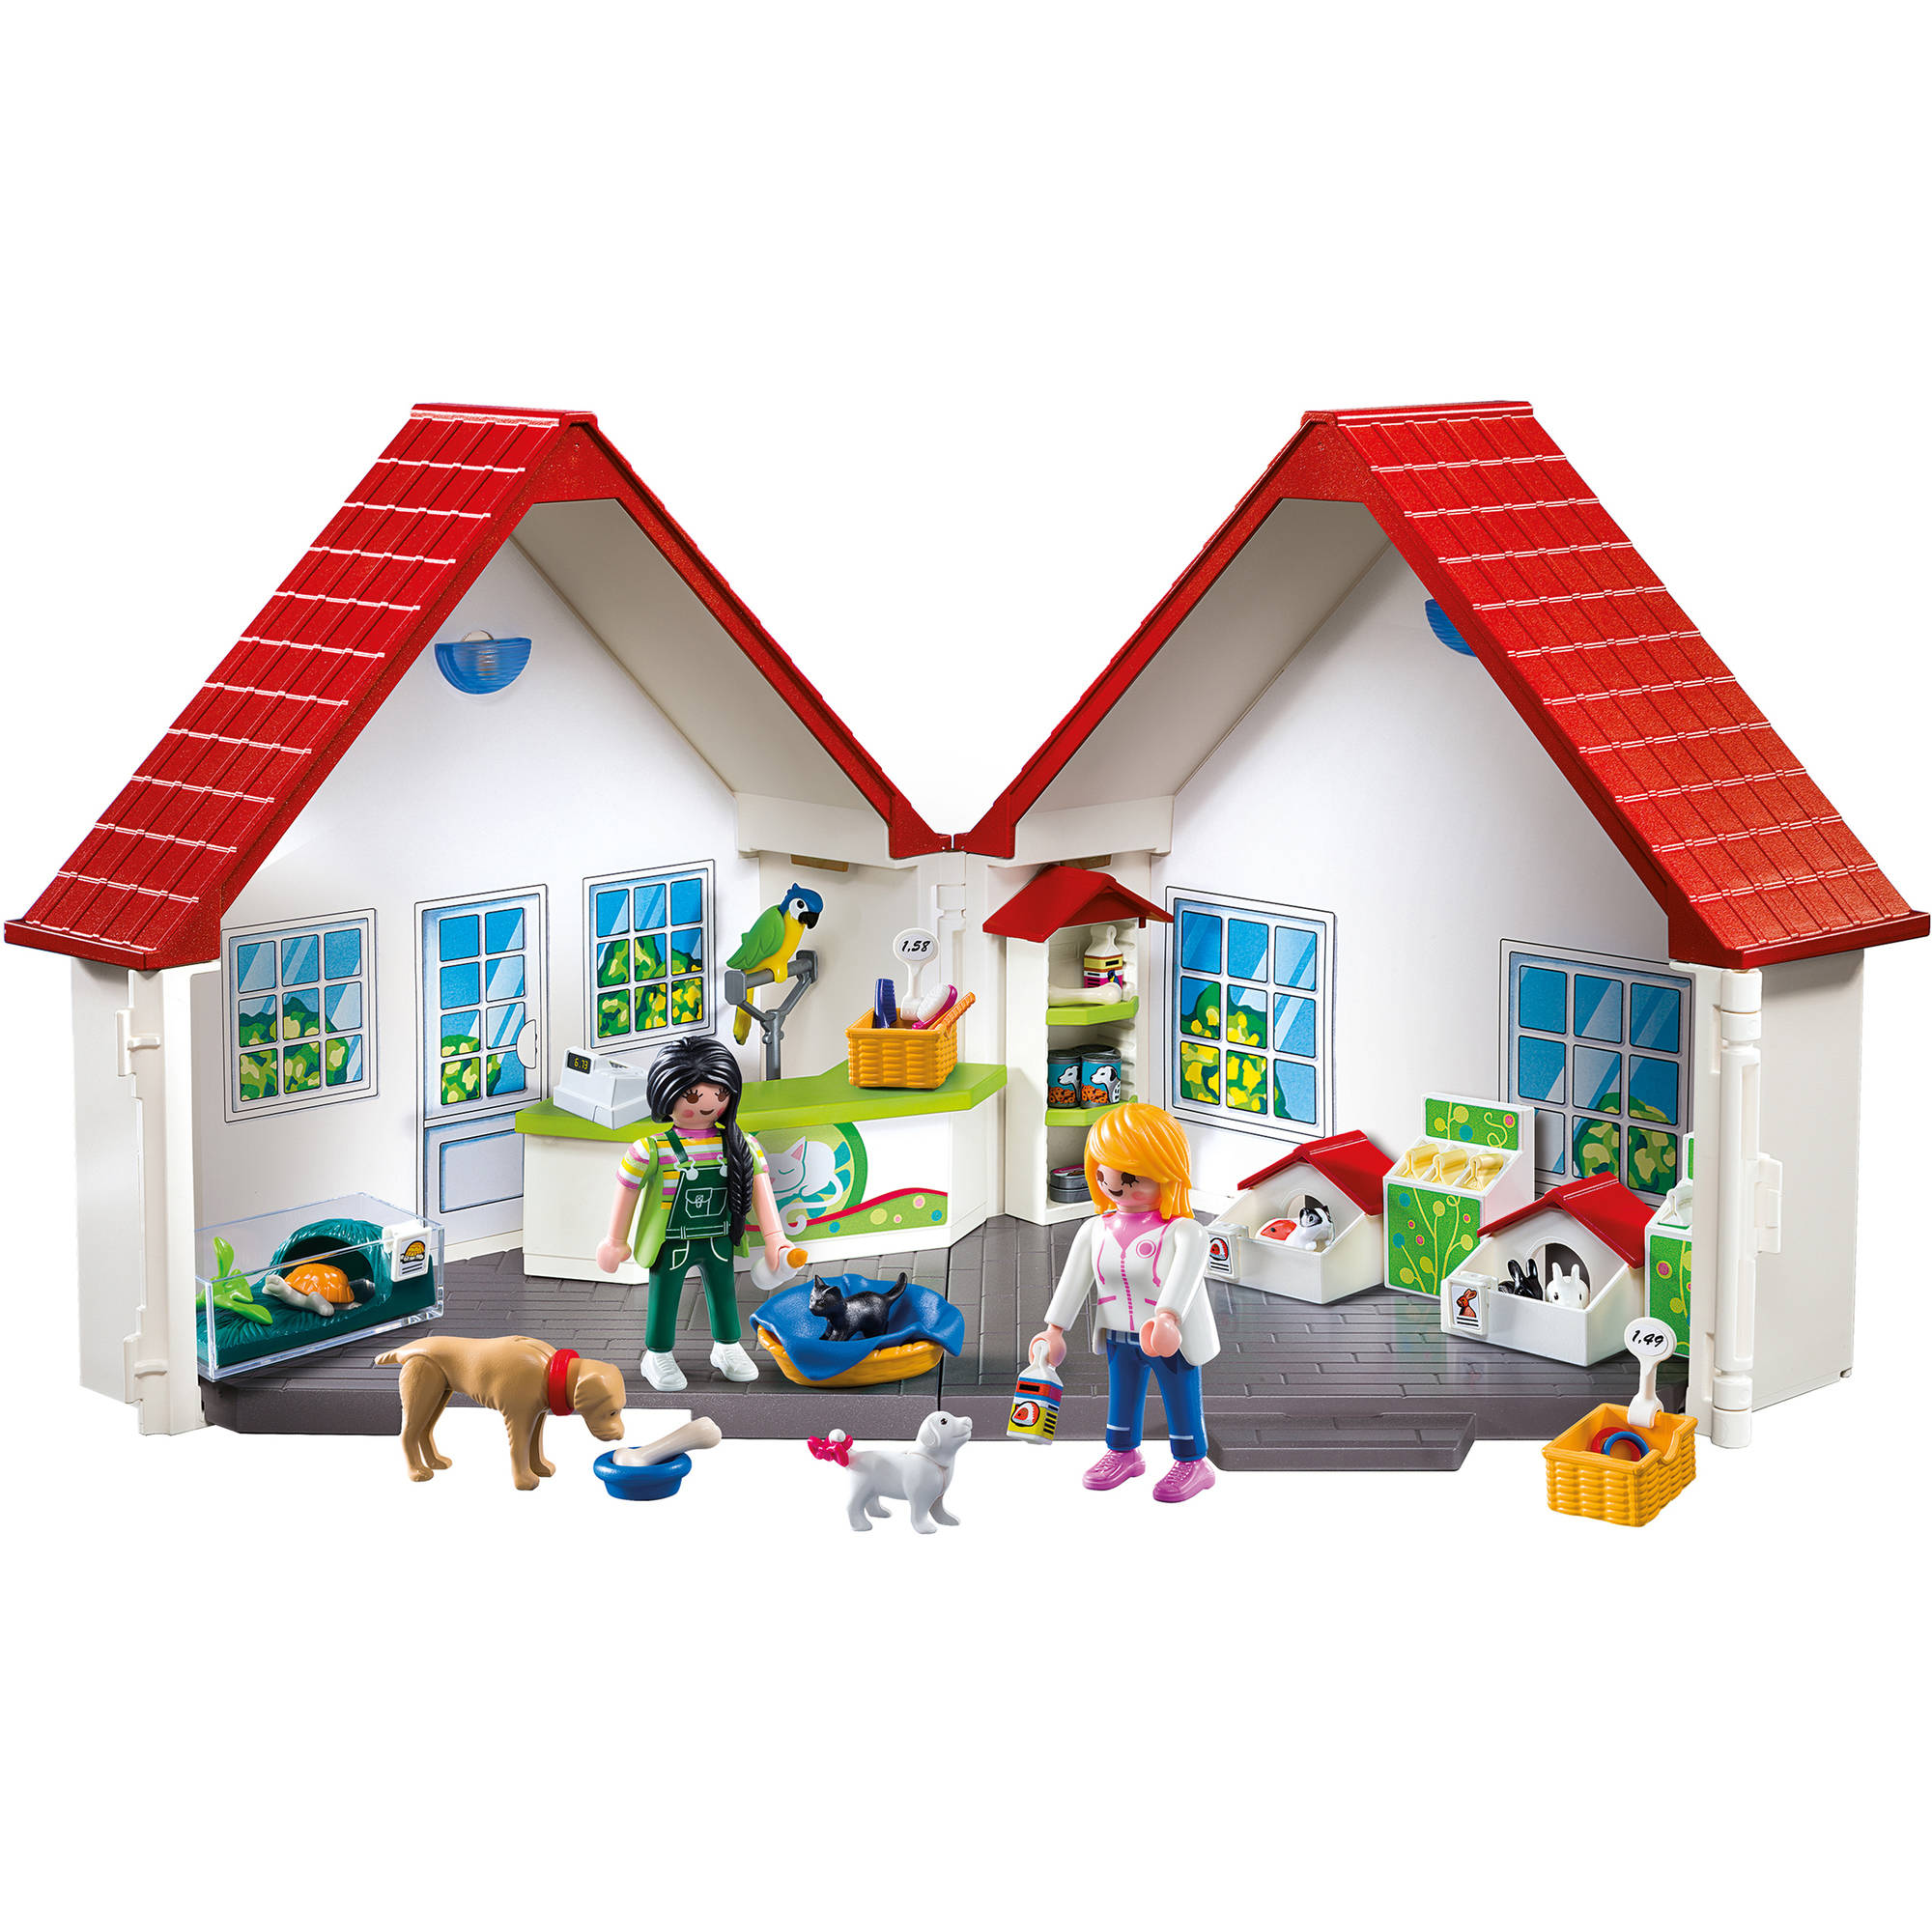 PLAYMOBIL Take Along Pet Store Playset - Walmart.com